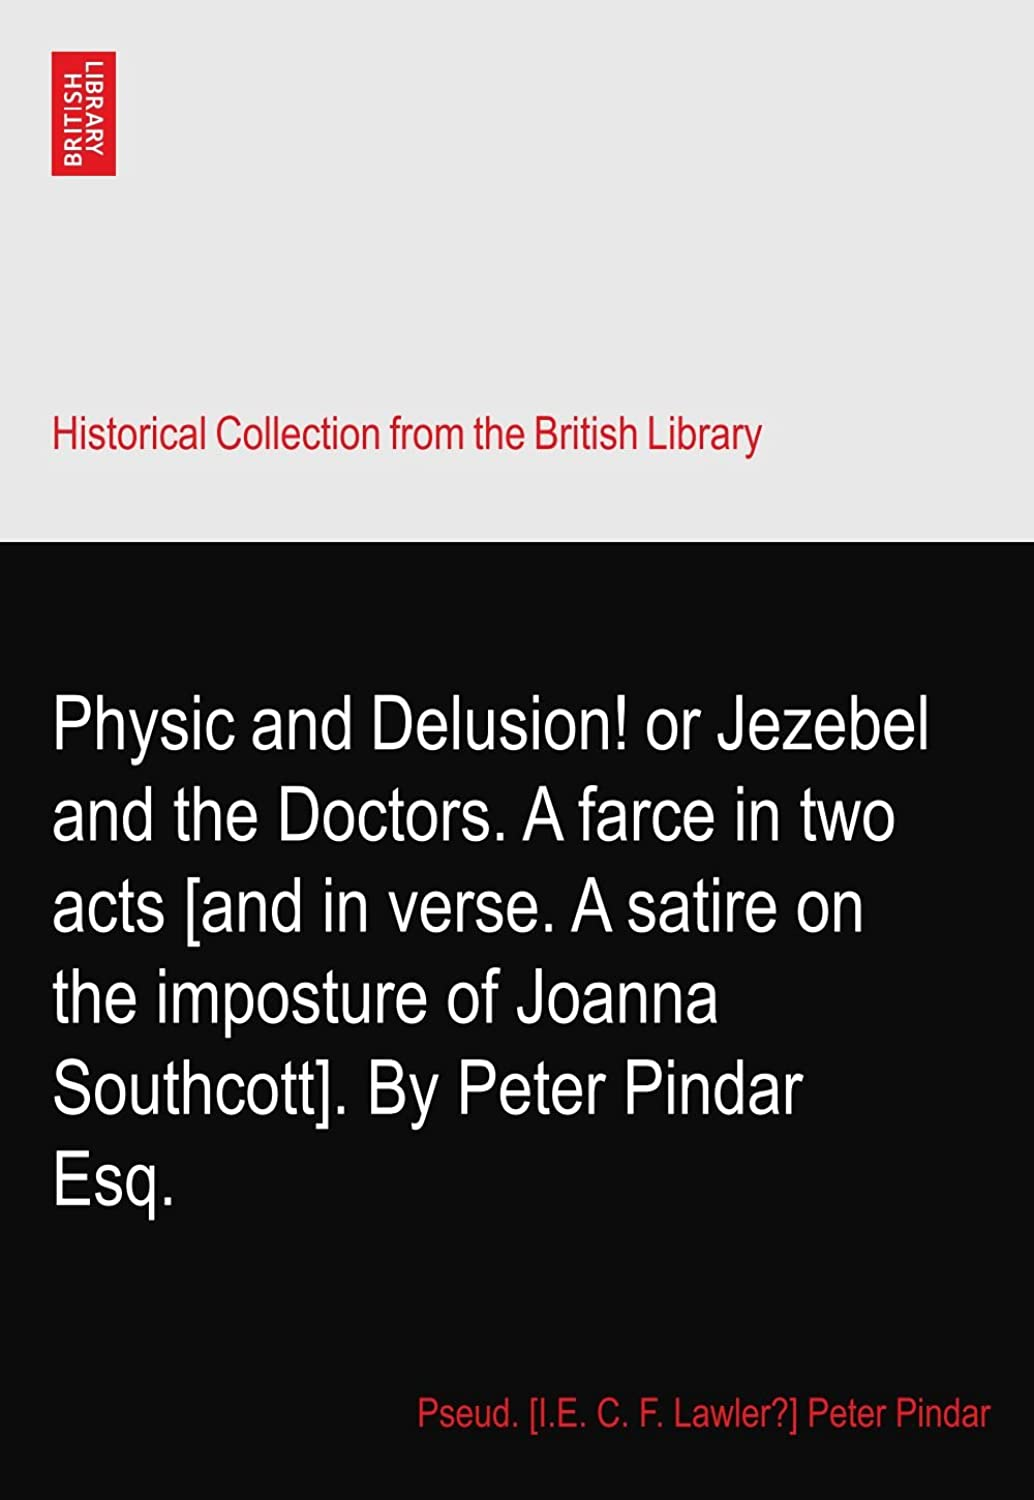 Physic and Delusion! or Jezebel and the Doctors. A farce in two acts [and in verse. A satire on the imposture of Joanna Southcott]. By Peter Pindar Esq.